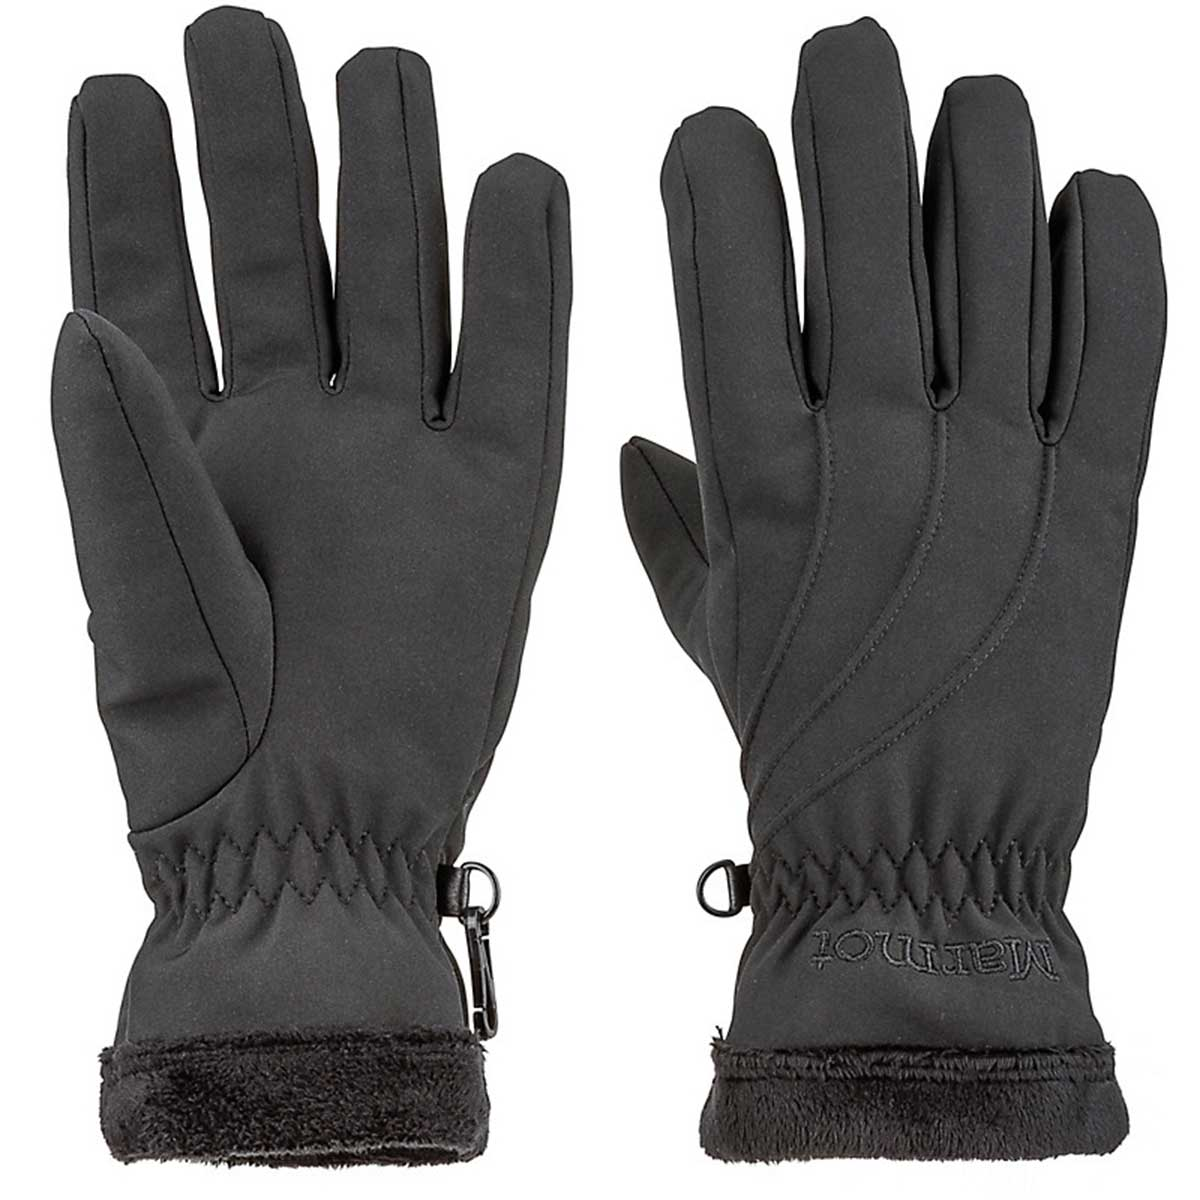 Marmot Women's Fuzzy Wuzzy Glove in Black